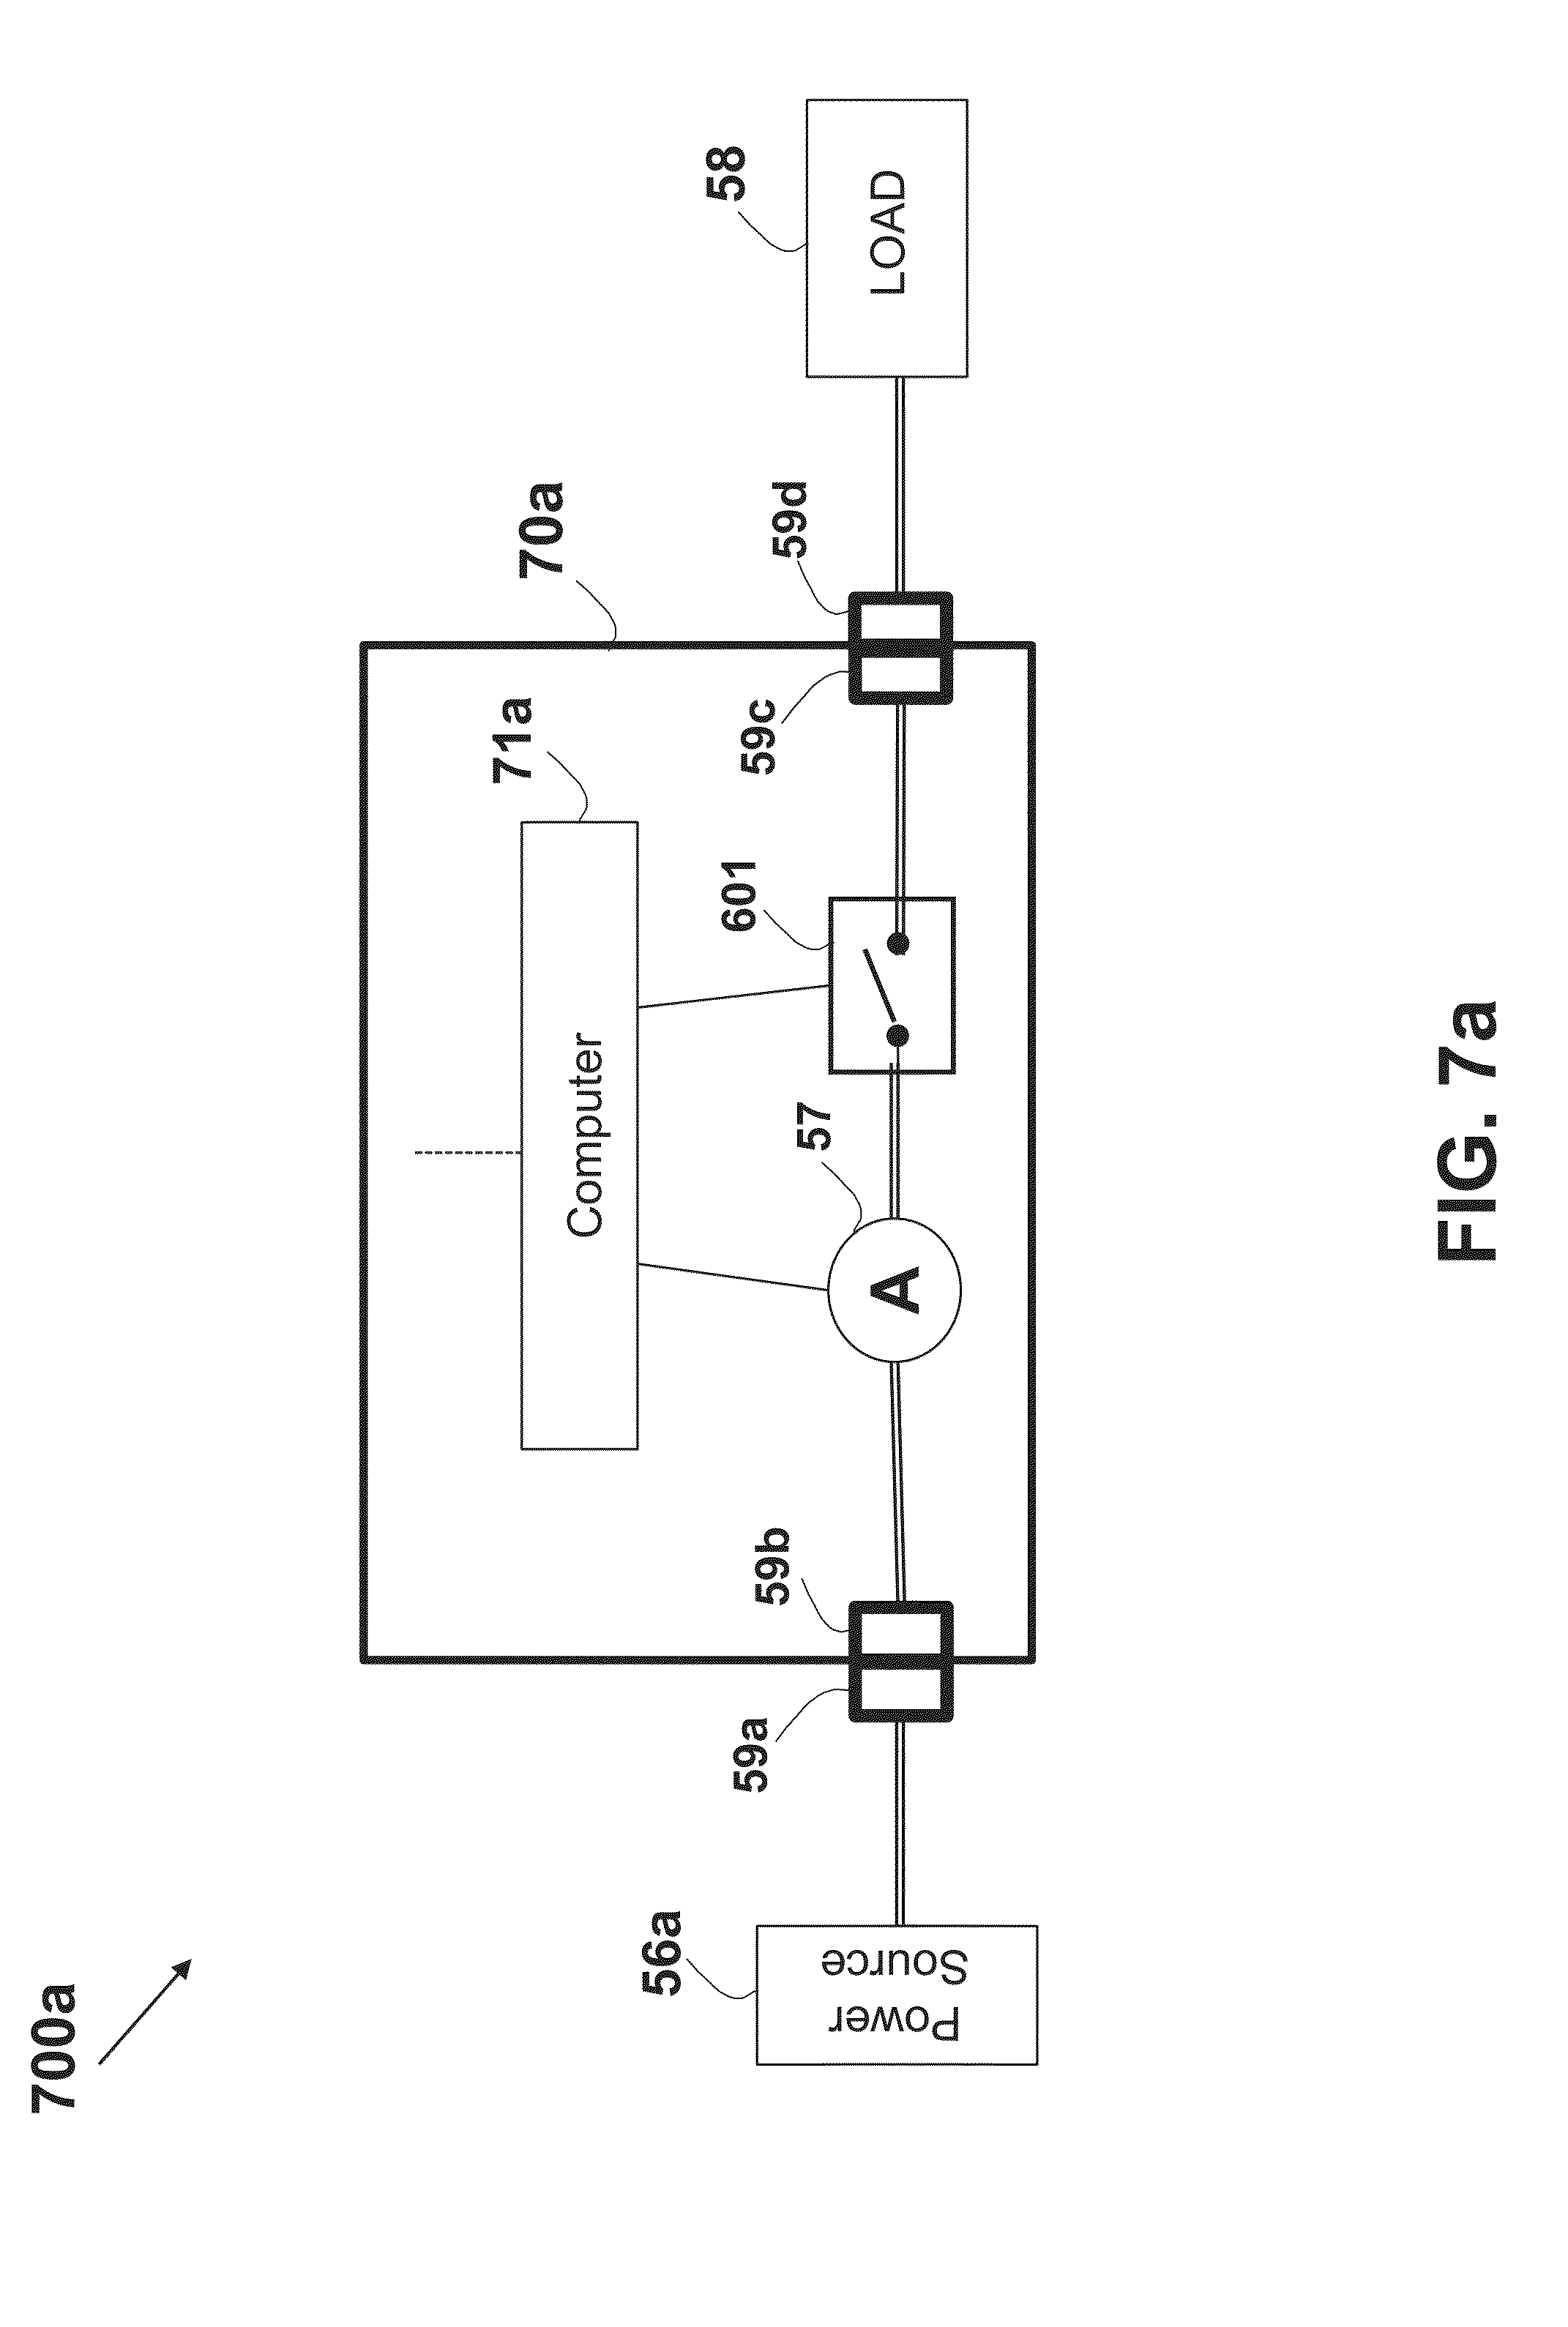 Patent Us20130201316 System And Method For Server Based Control Pit Bike Ignition Stator Mag O Plate Besides Ssr 110 Wiring Drawing